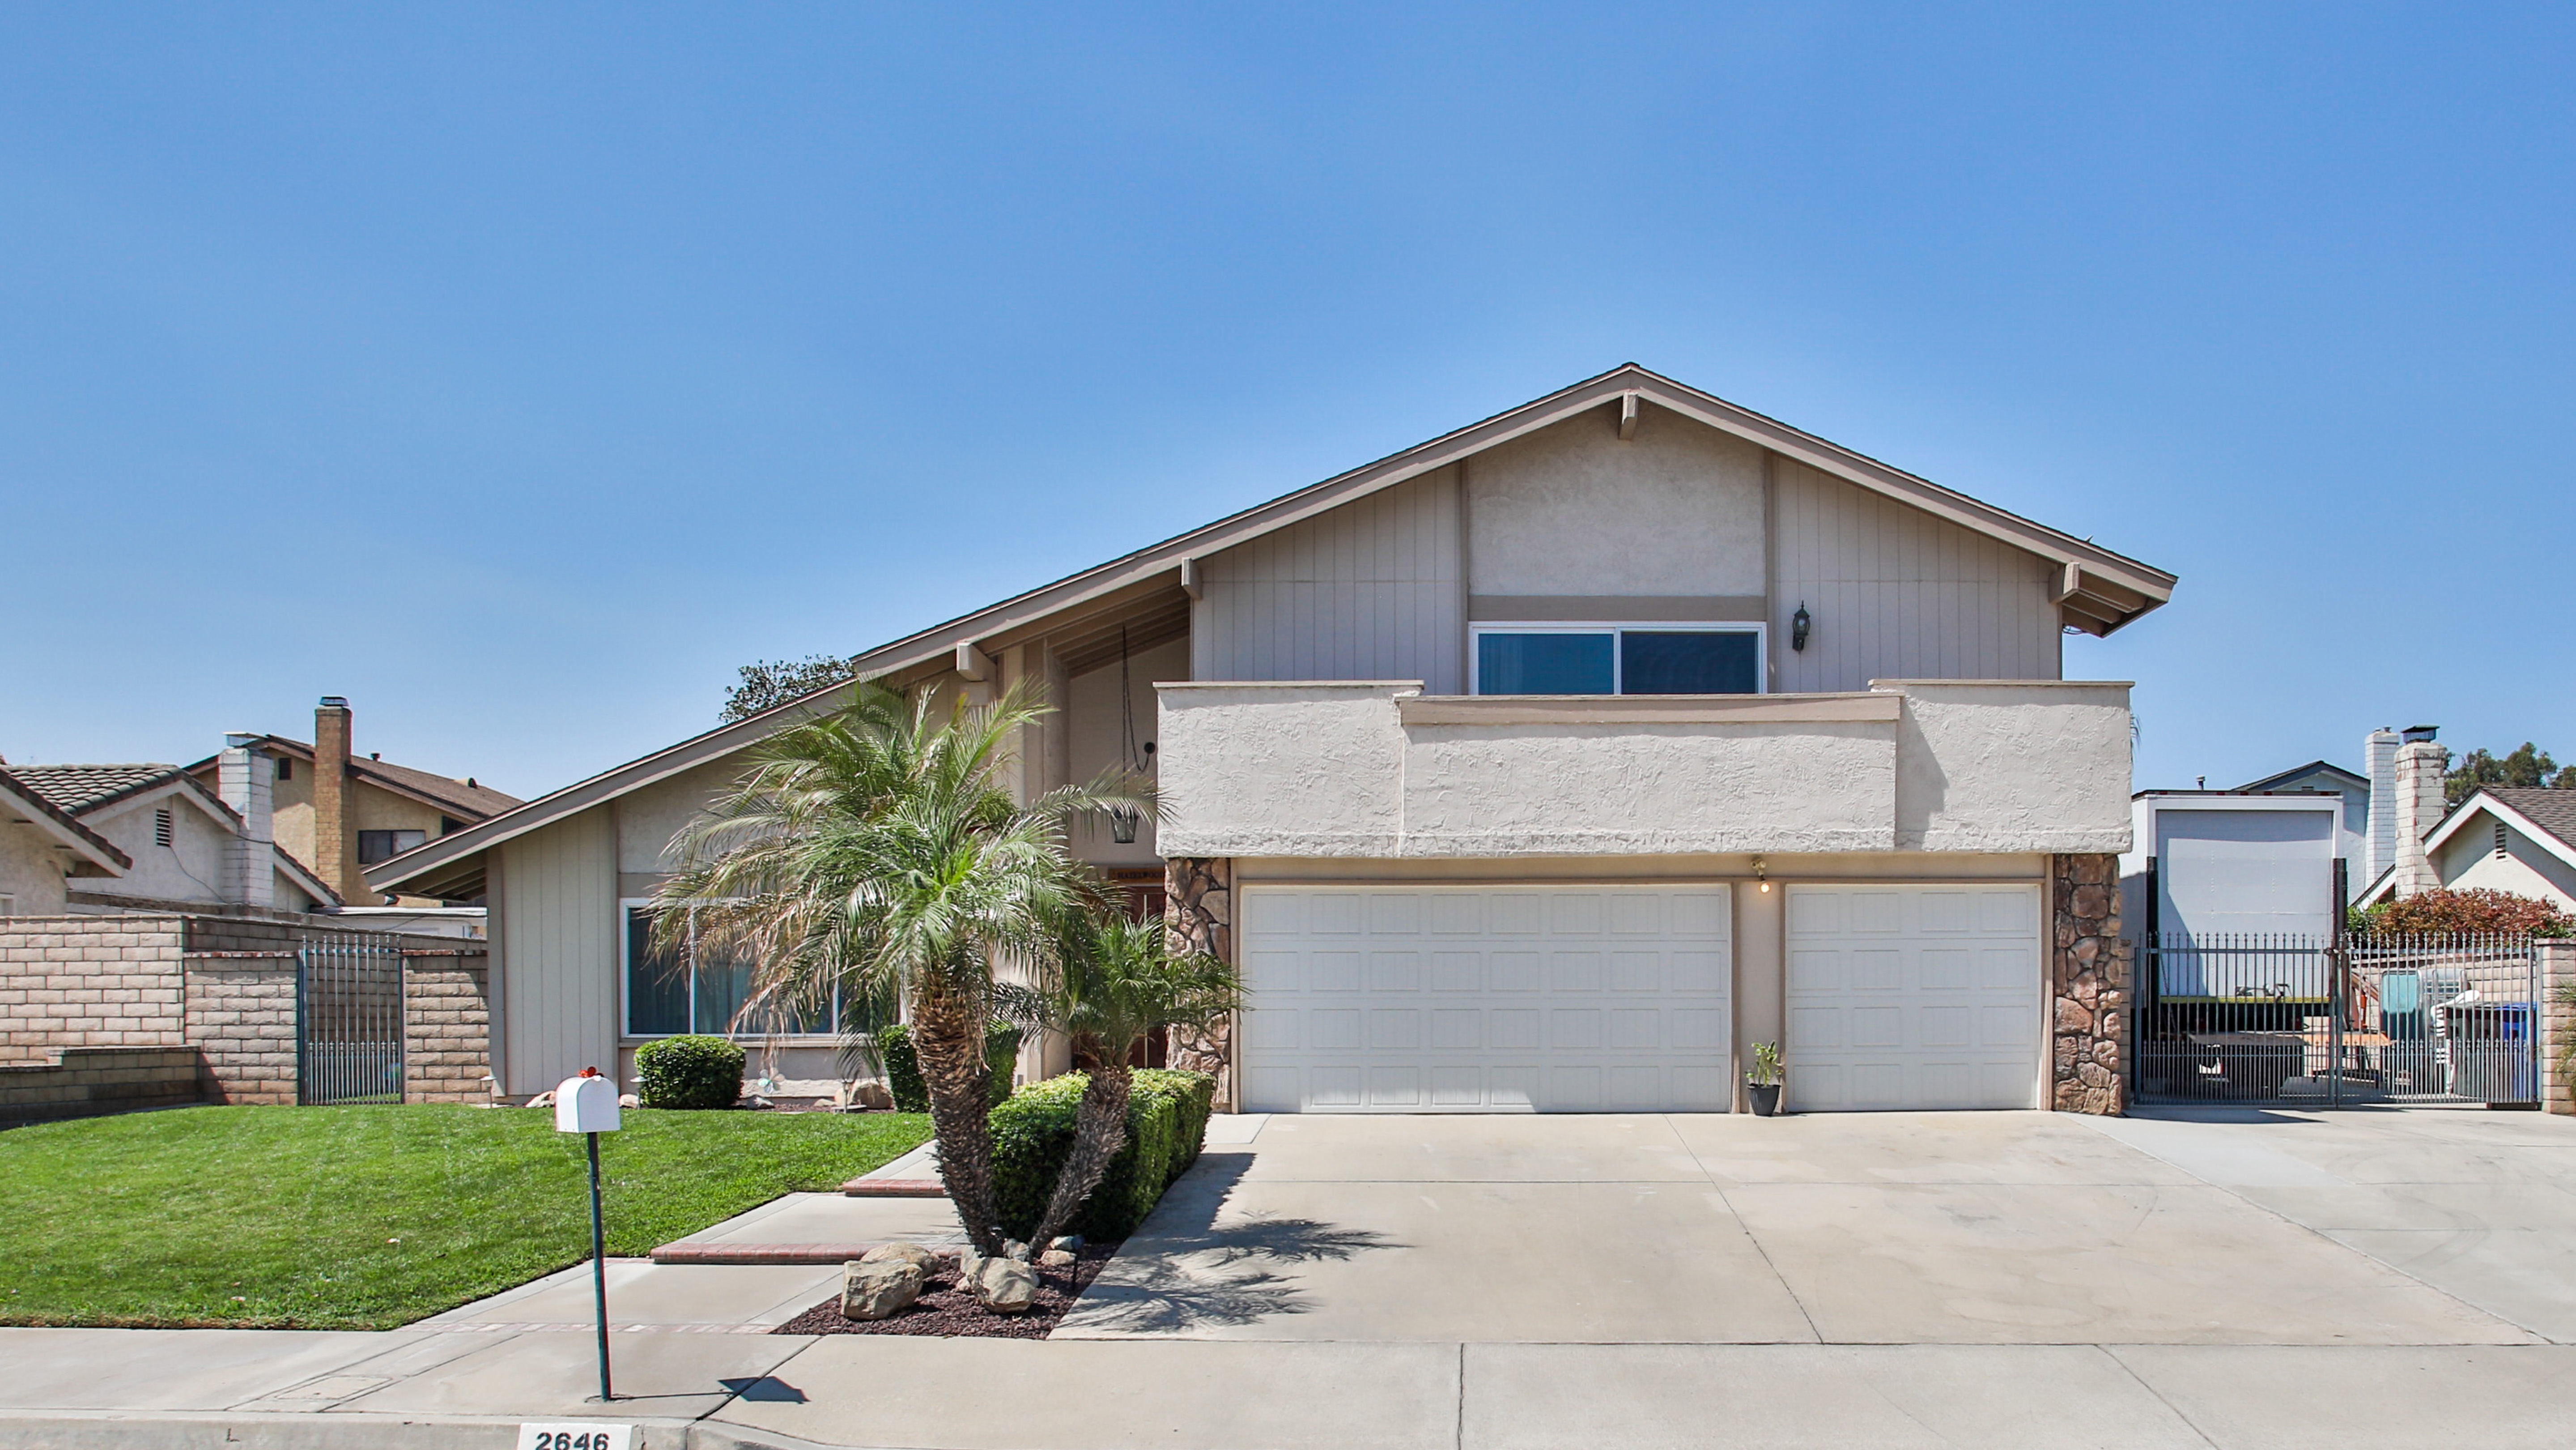 2646 Klamath Court , Riverside, CA 92503 | MLS# IV18055416 | Keller Williams